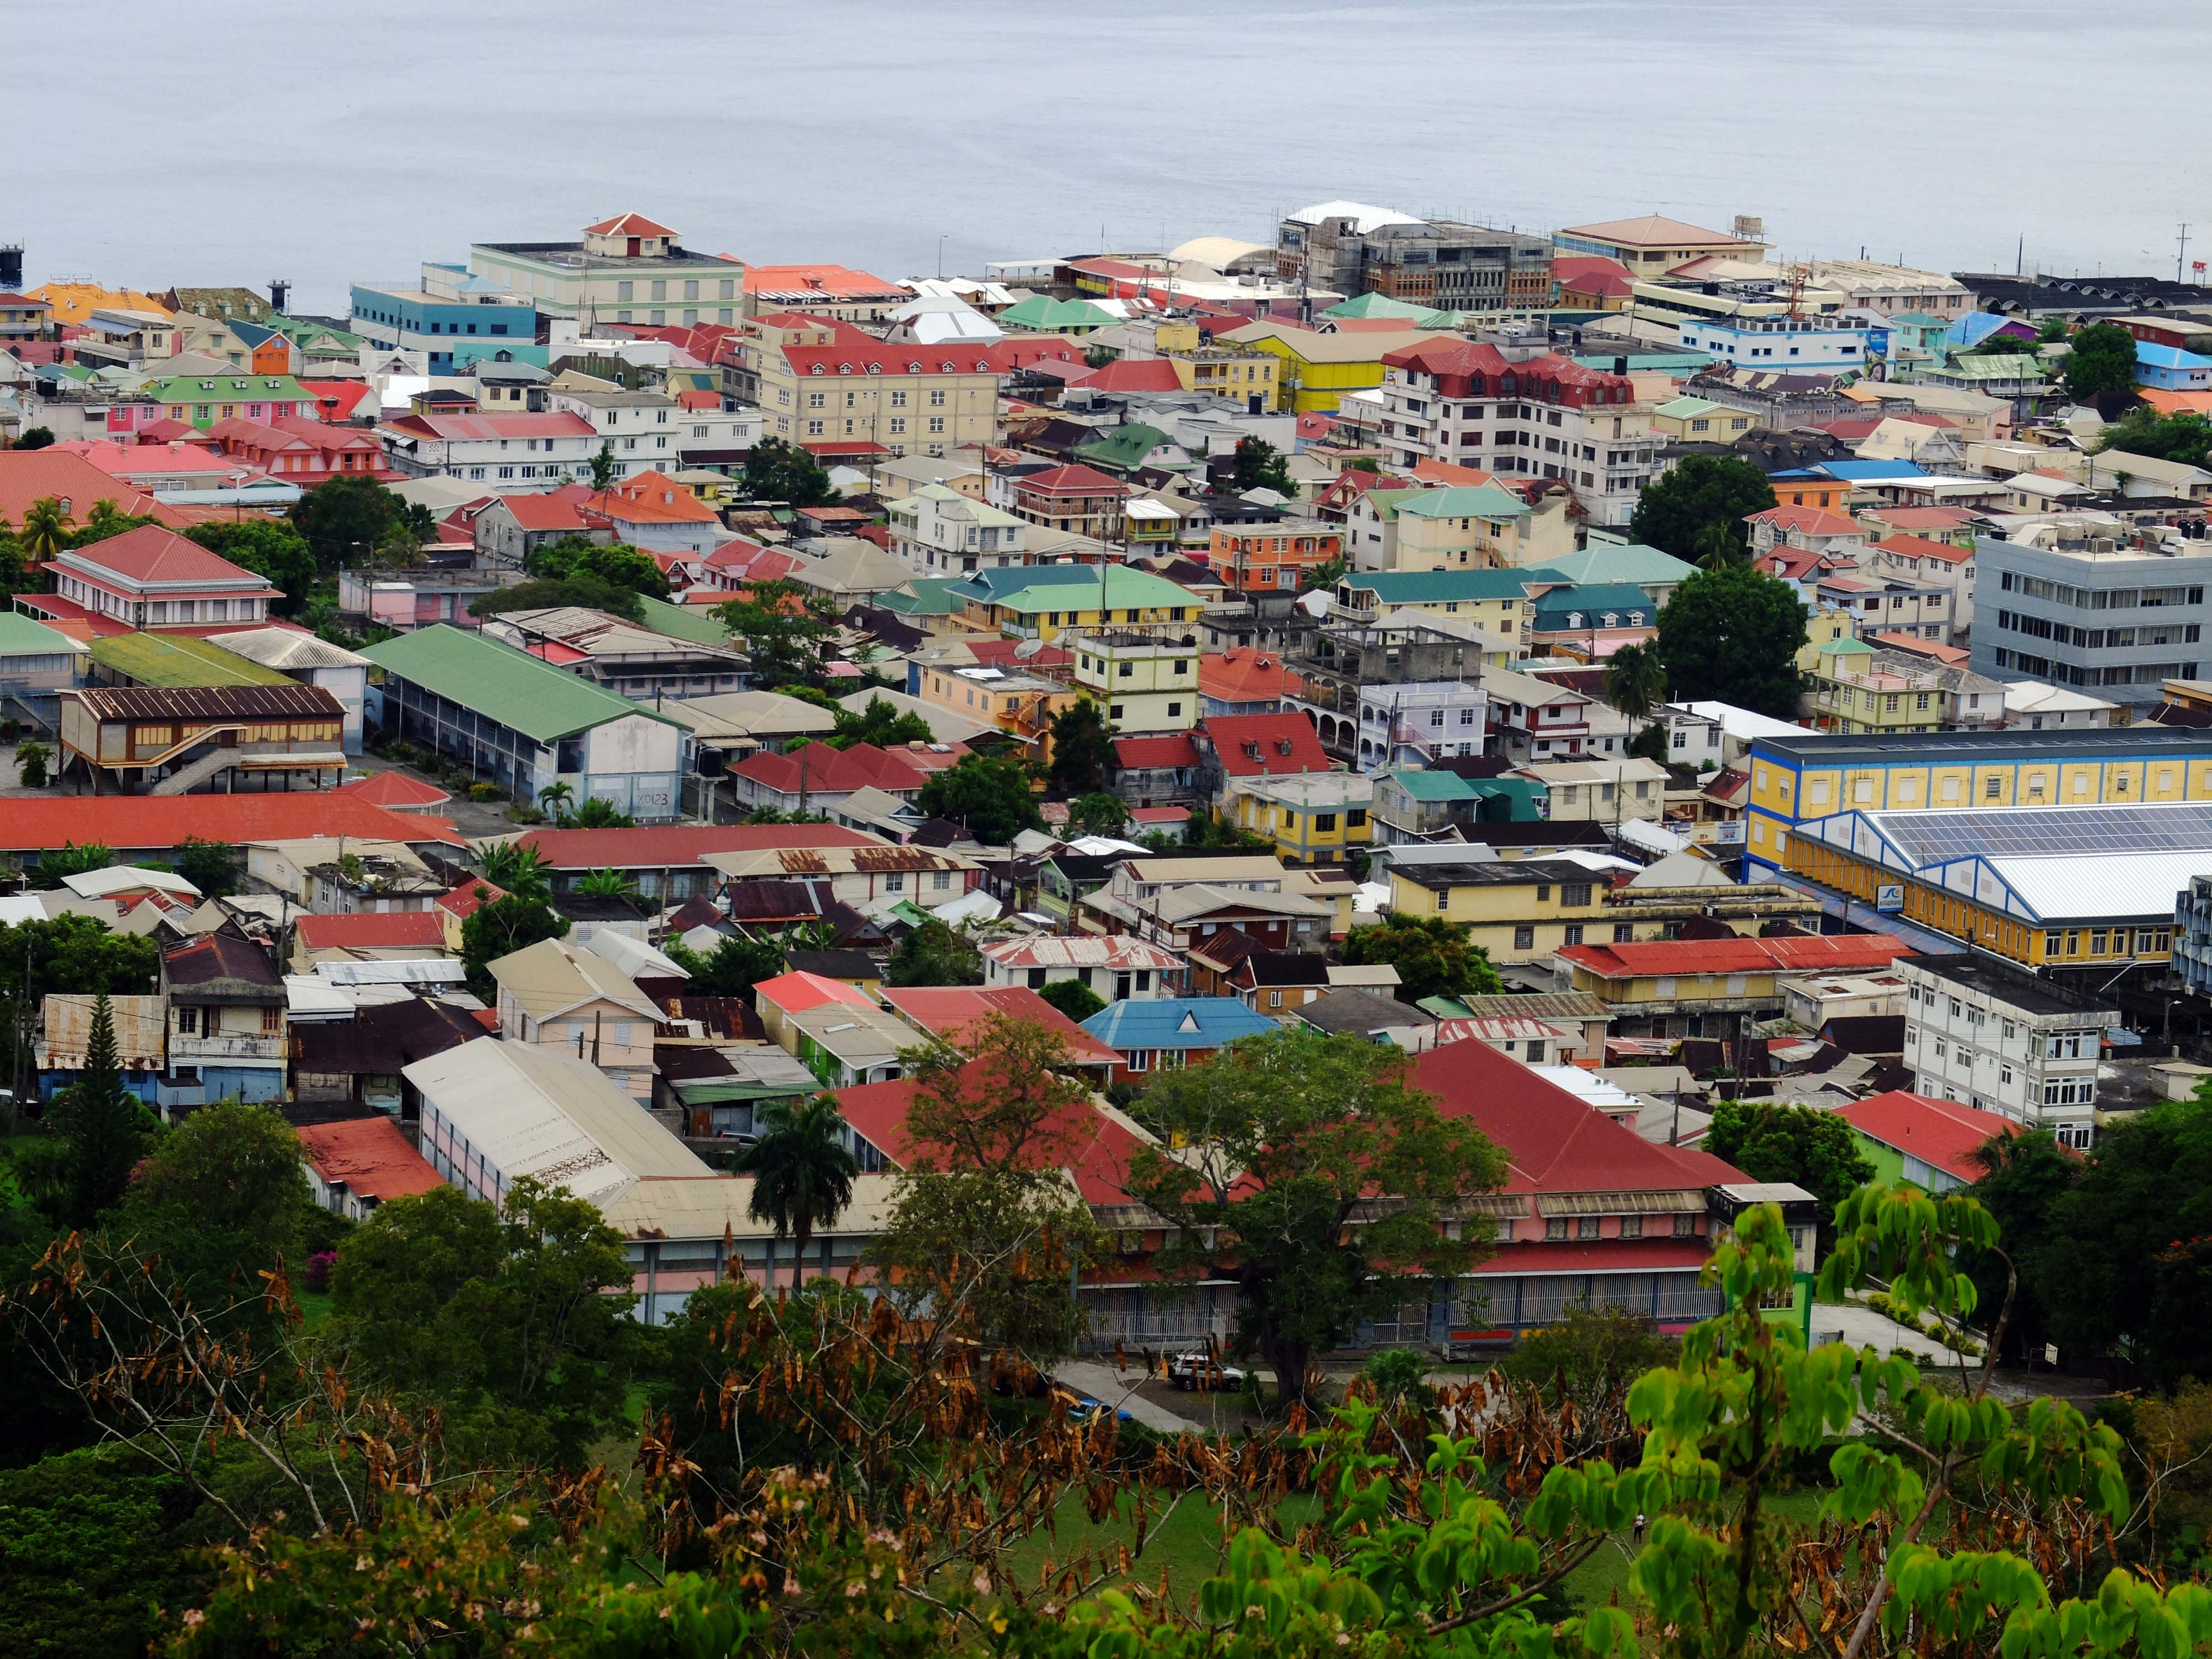 View of Roseau, Dominica, from Morne Bruce